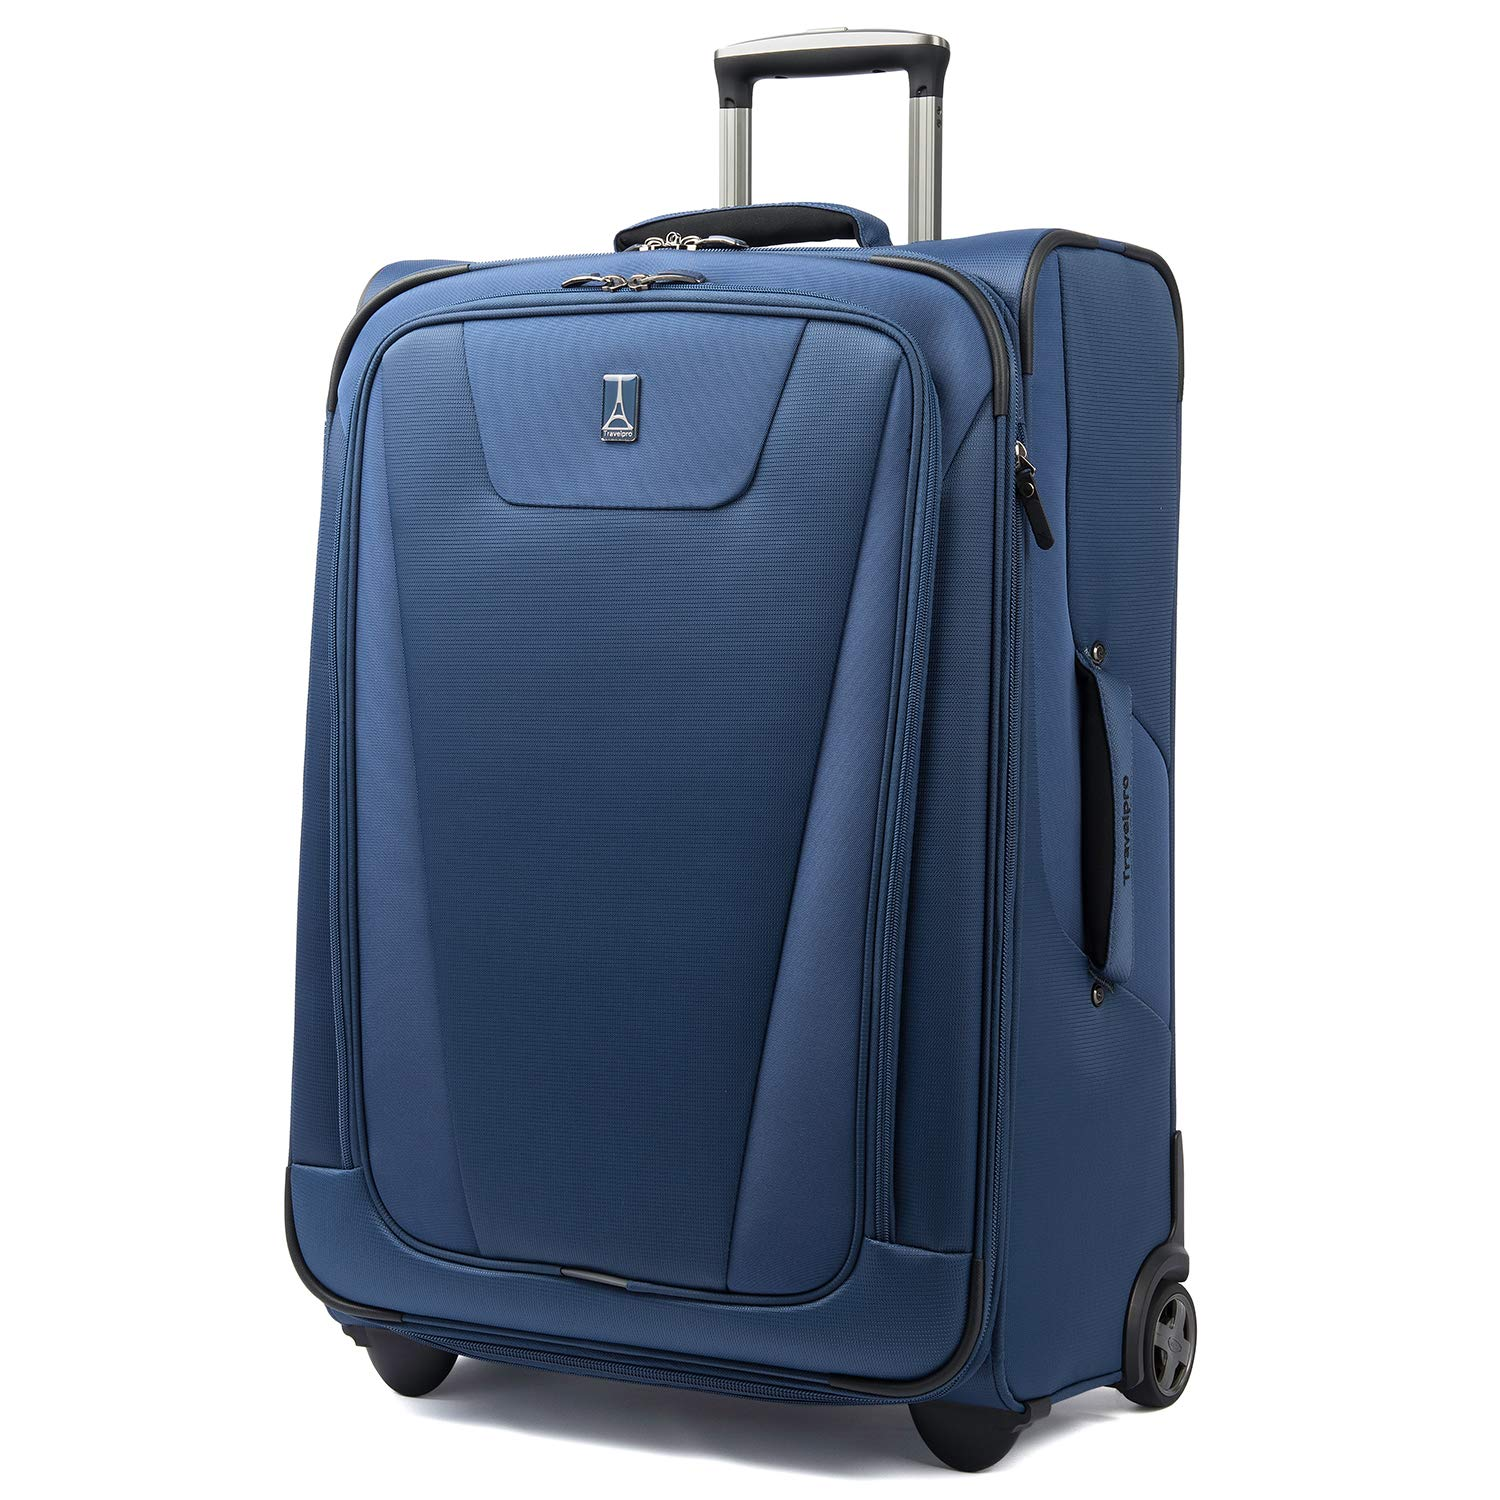 Travelpro Maxlite 4 Expandable Rollaboard 26 Inch Suitcase, Blue Travelpro International Inc. 401152602